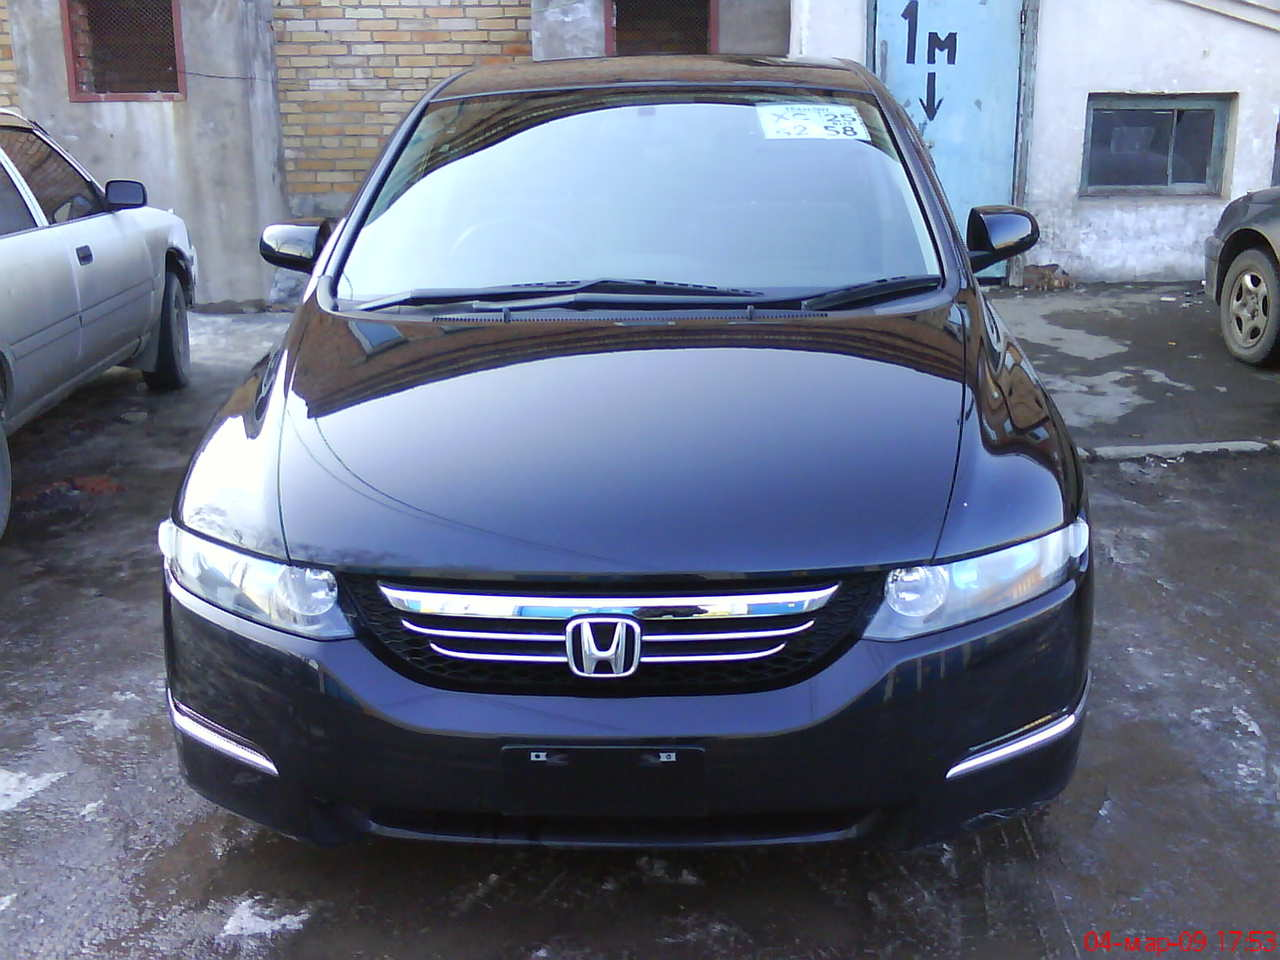 2003 honda odyssey photos 2 4 gasoline cvt for sale. Black Bedroom Furniture Sets. Home Design Ideas